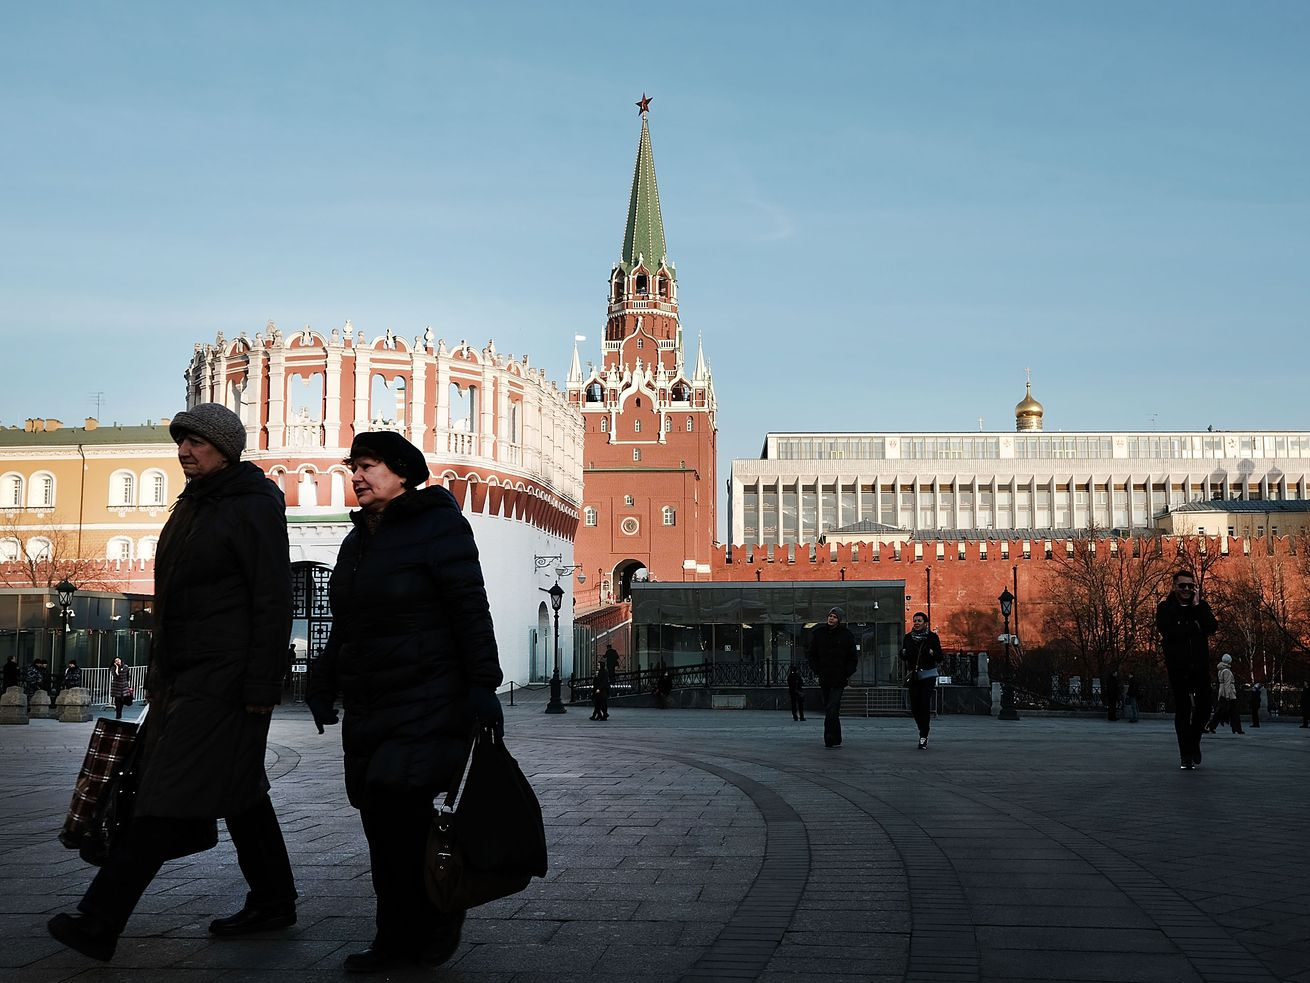 The entrance to Russia's Kremlin.